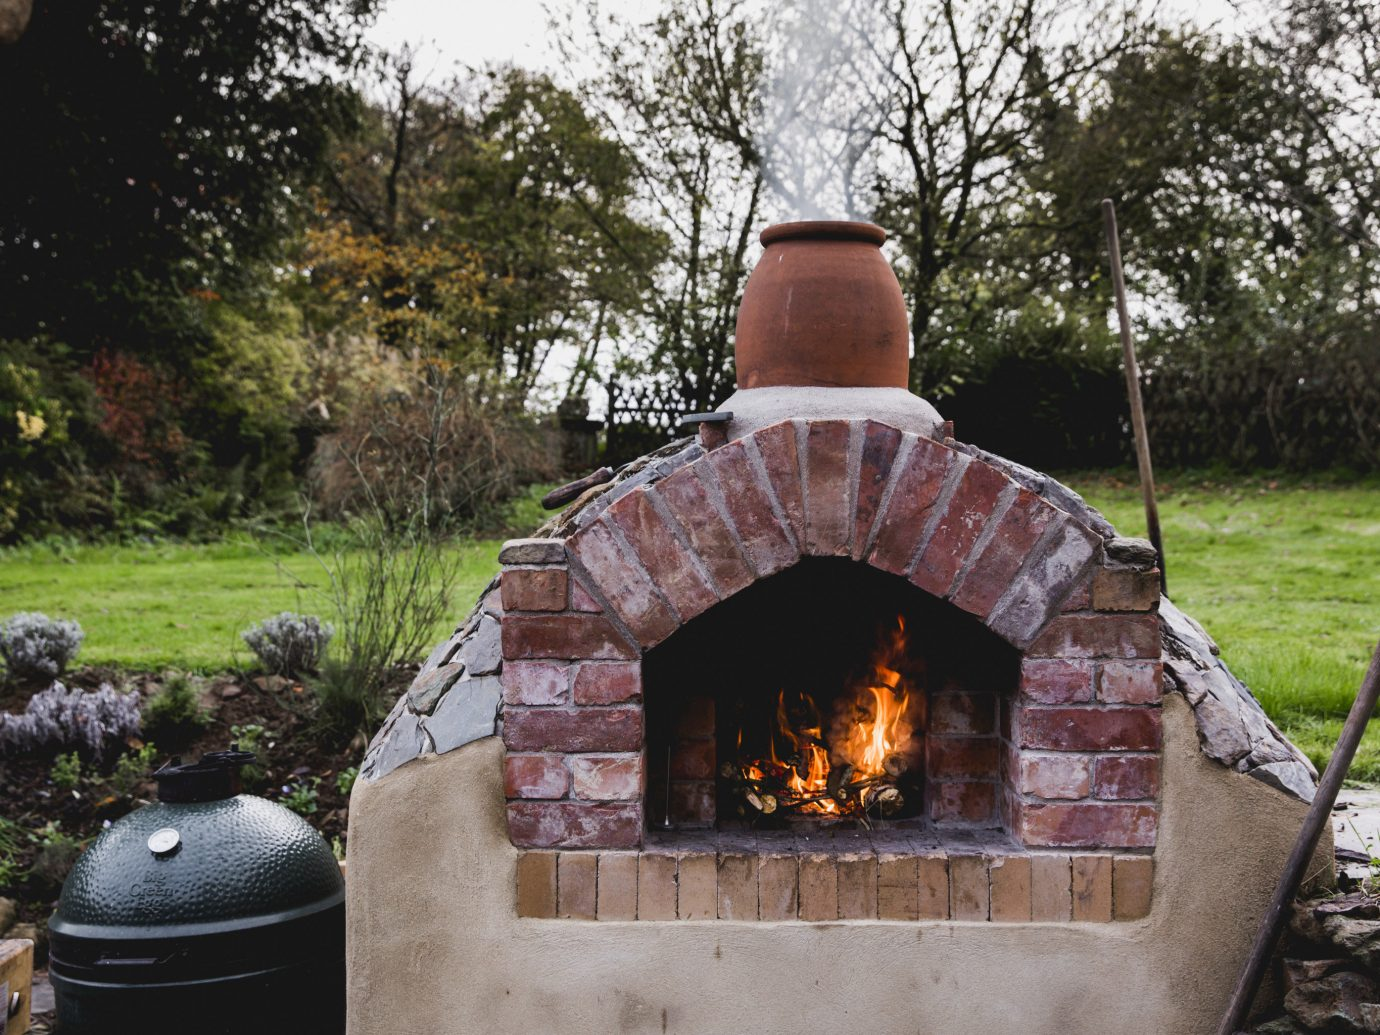 Hotels tree grass outdoor fire stone building Fireplace brick barbecue backyard barbecue grill meat outdoor grill masonry oven grill